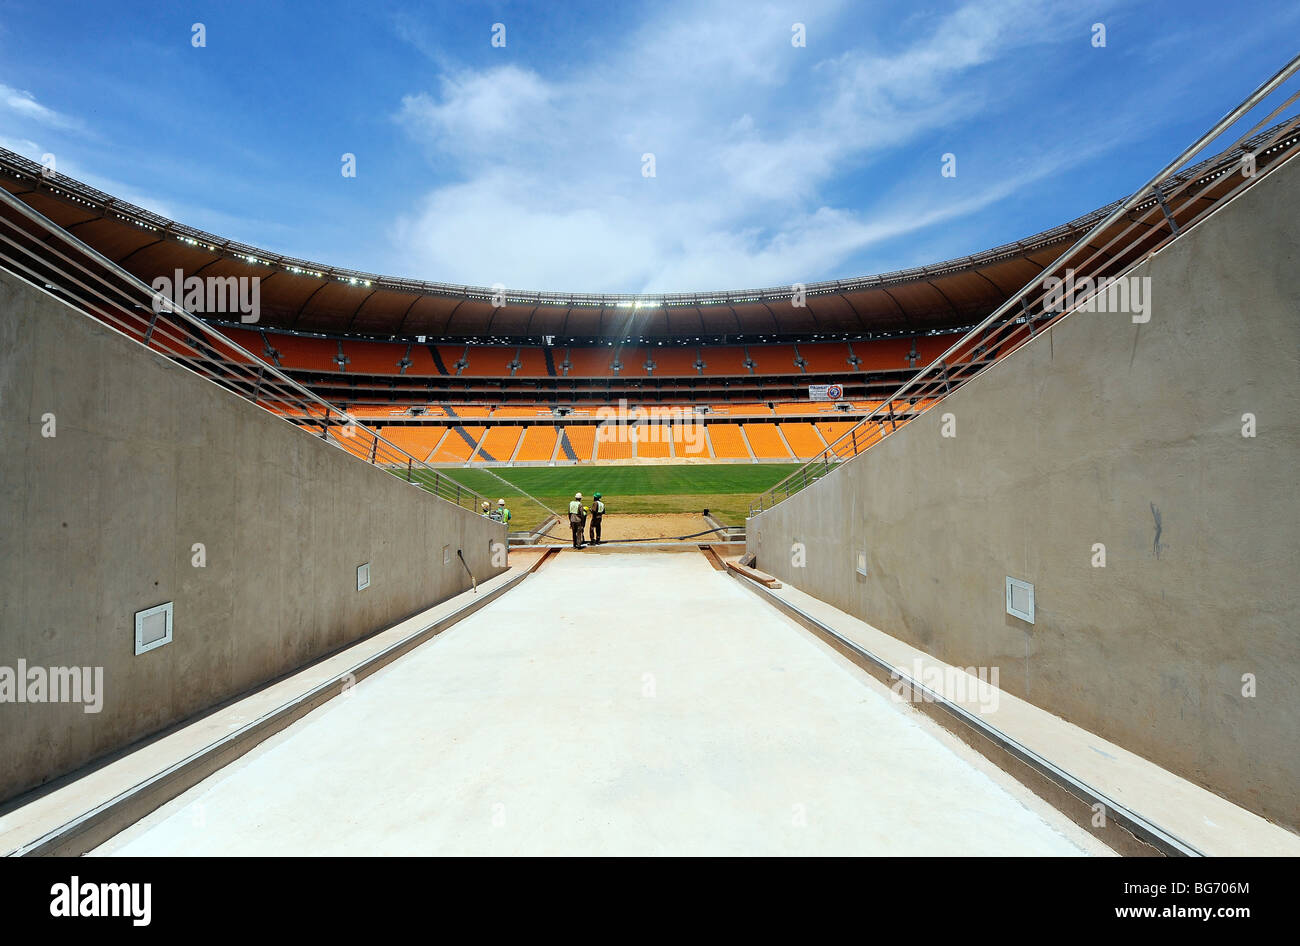 The view from the players tunnel at Soccer City Stadium in Johannesburg, South Africa - Stock Image